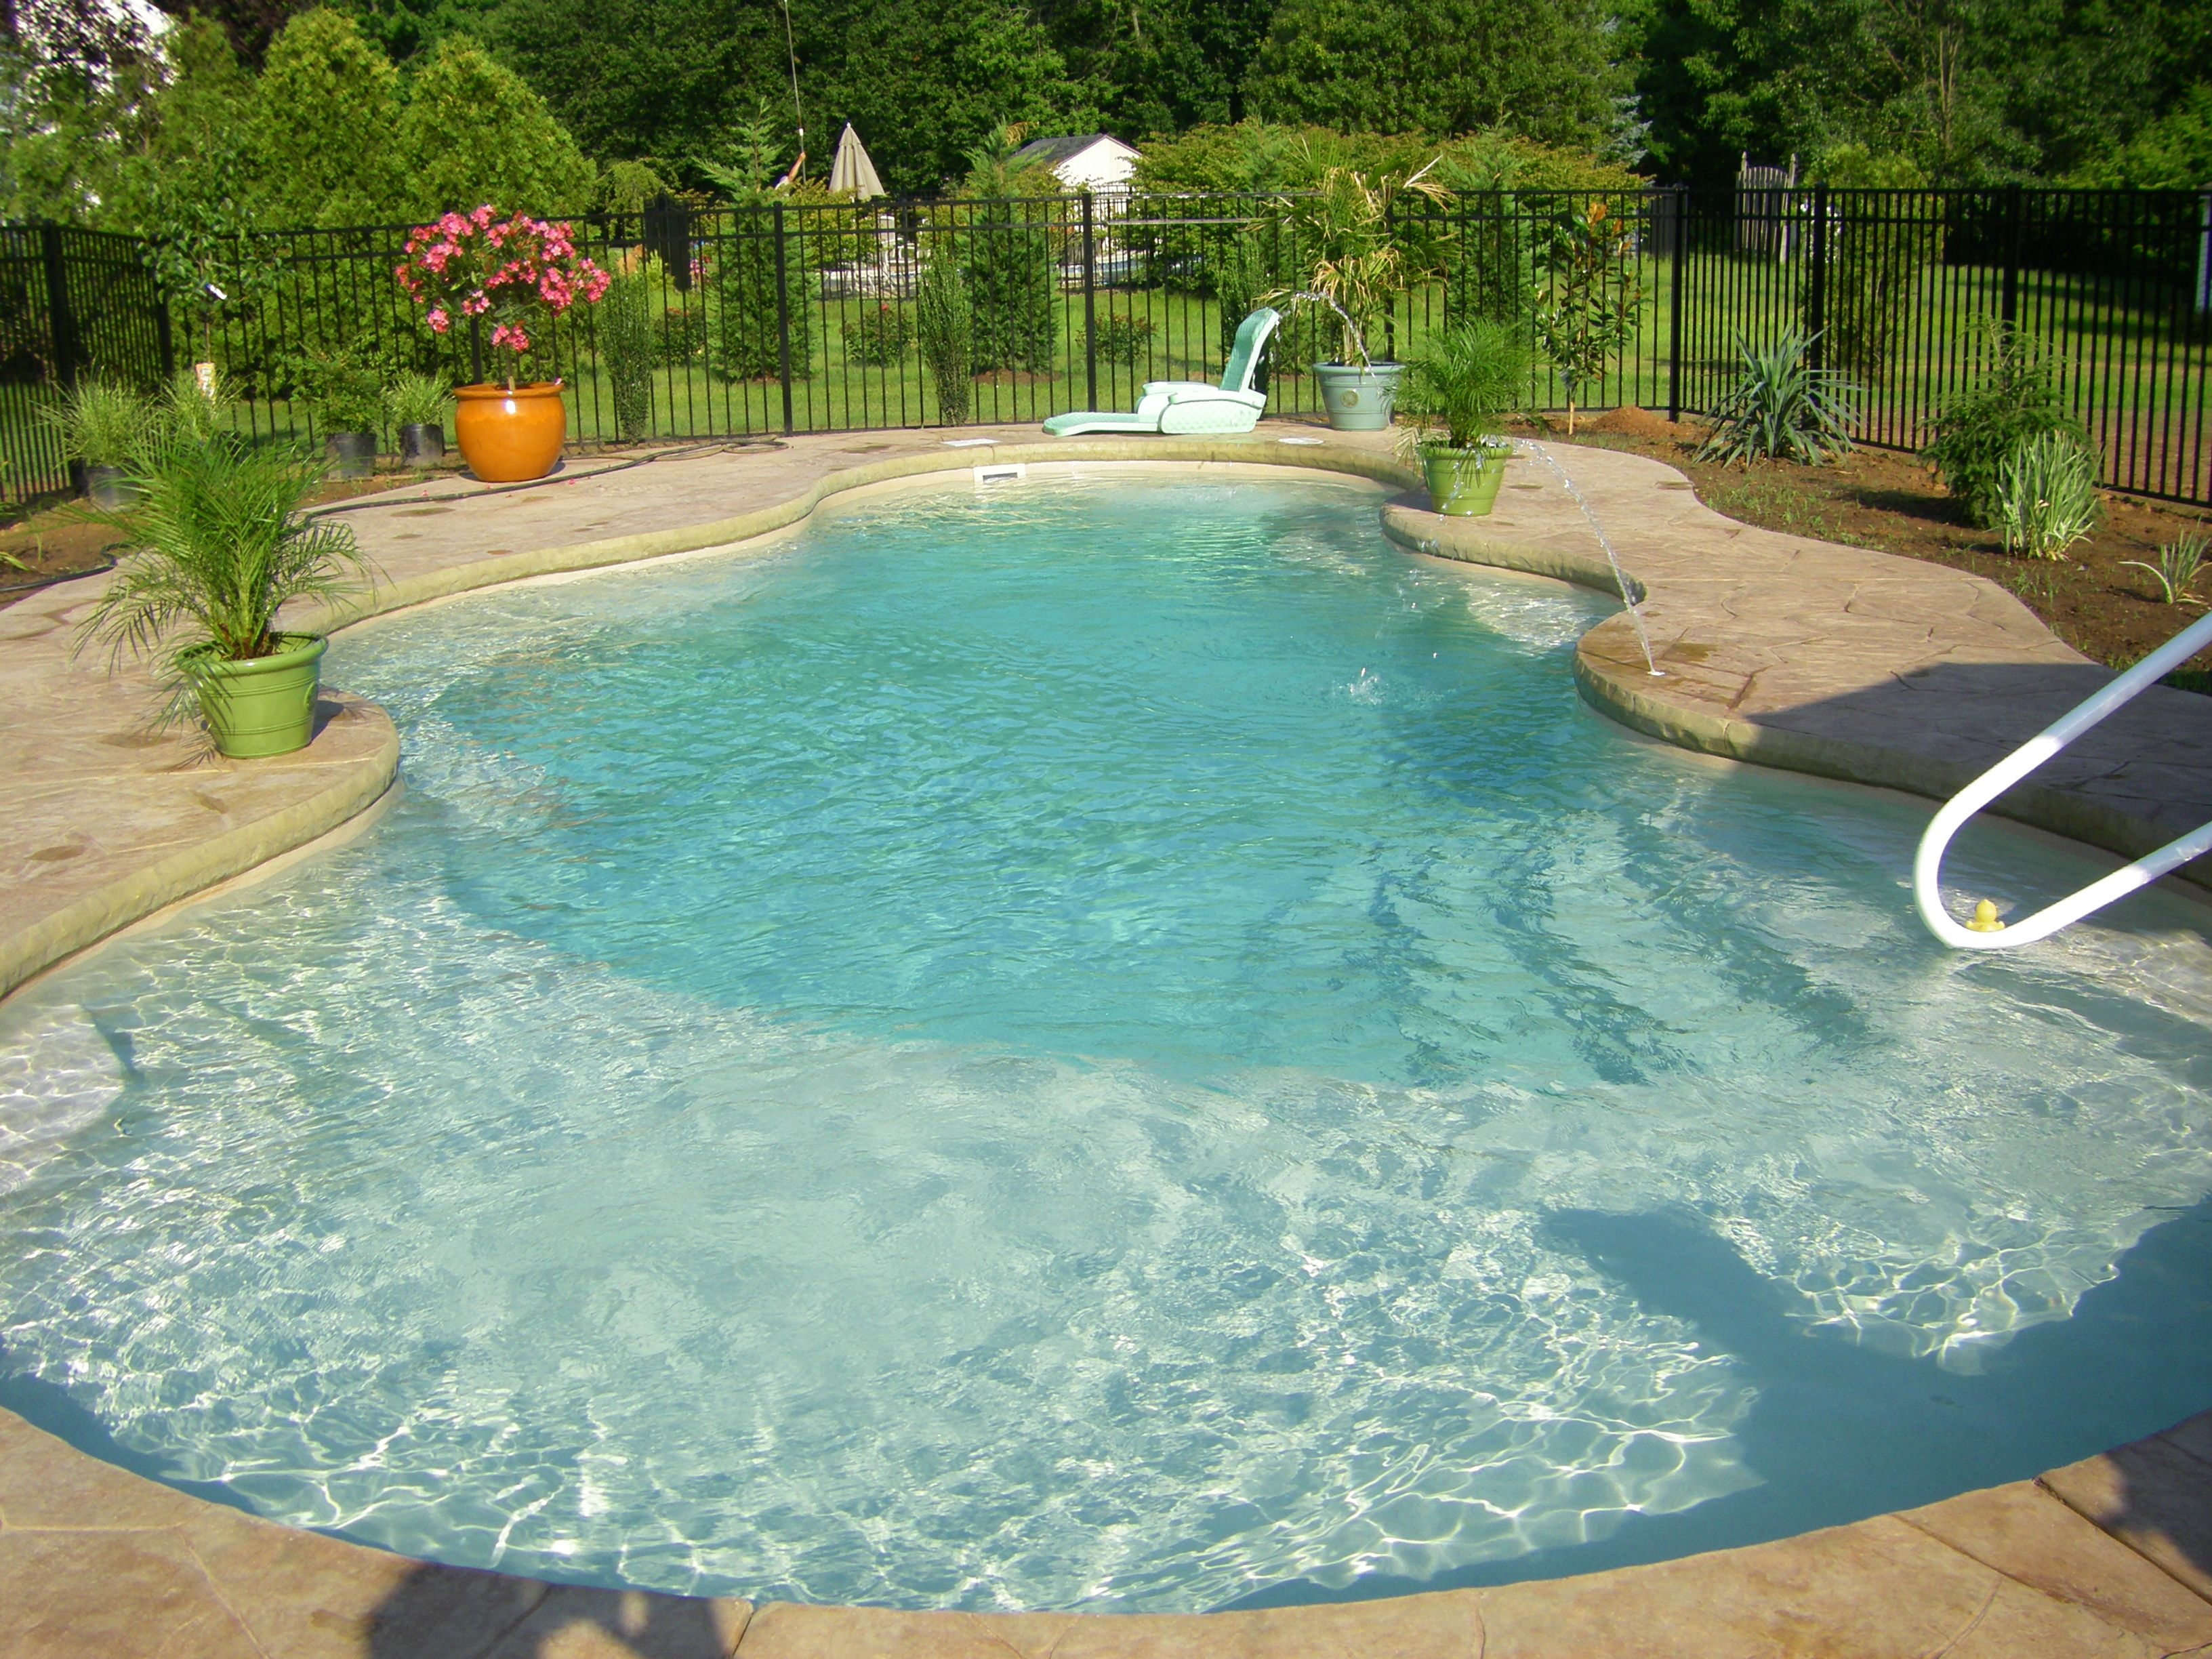 Tanning Ledge  Backyard pool landscaping, Pool landscaping, Small